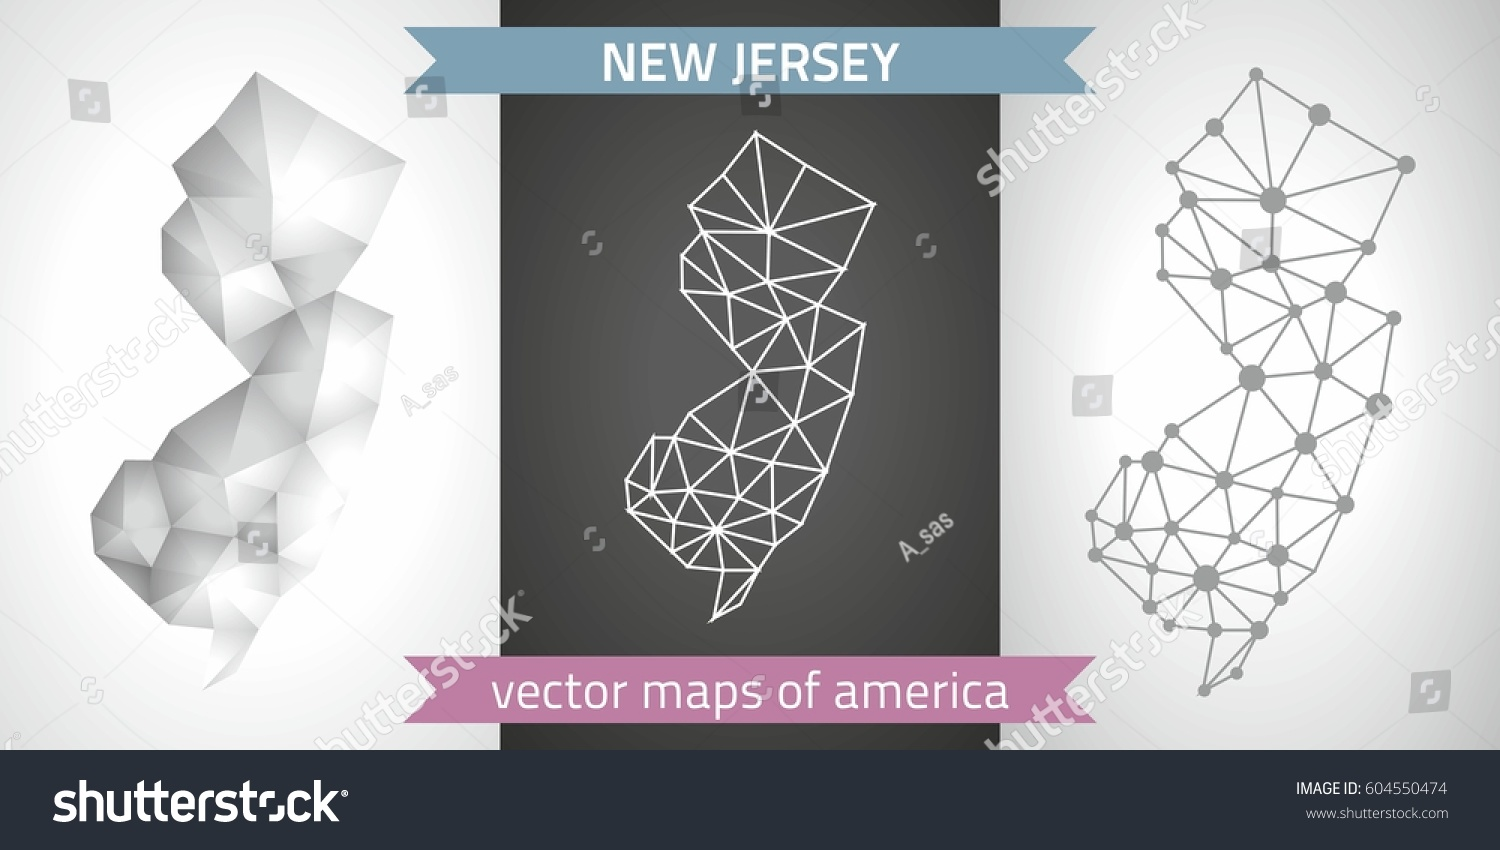 New Jersey Outline 3d